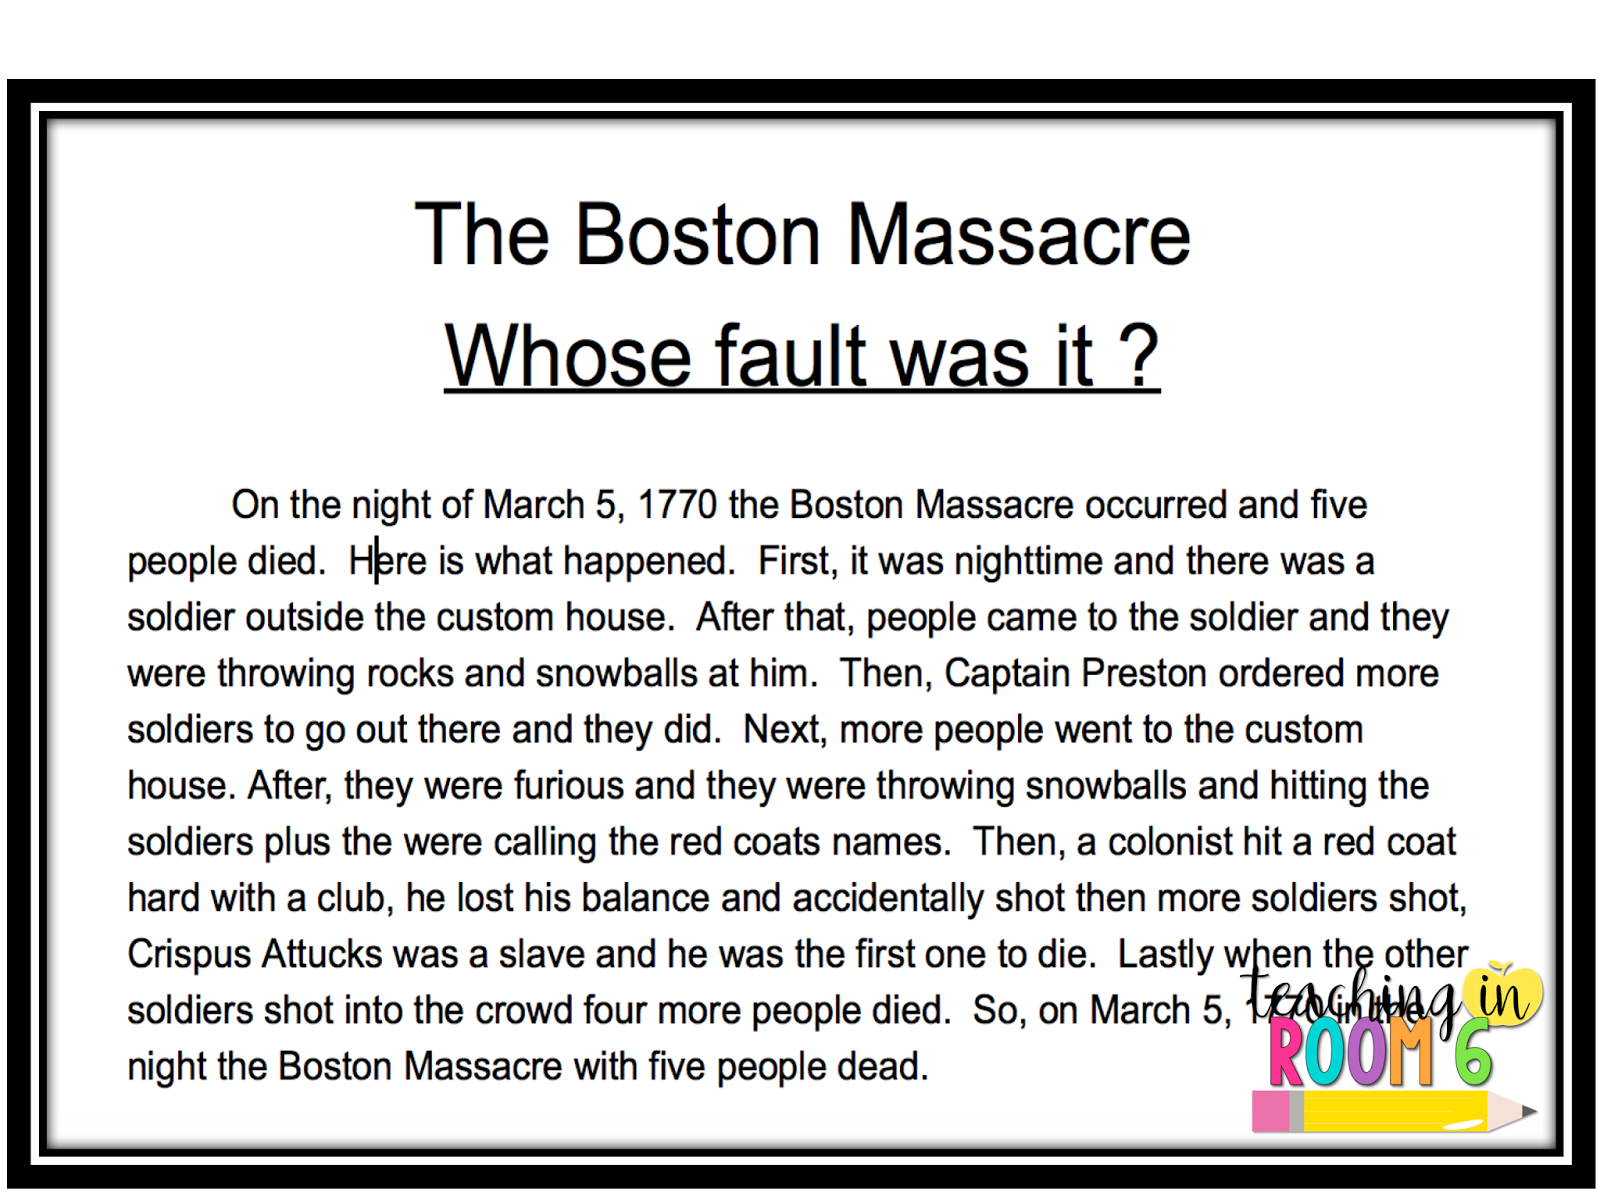 worksheet Fact Opinion Bias Worksheet truth and bias in the boston massacre teaching room 6 this is one of my students attempts at writing a non biased account night it was not easy to do